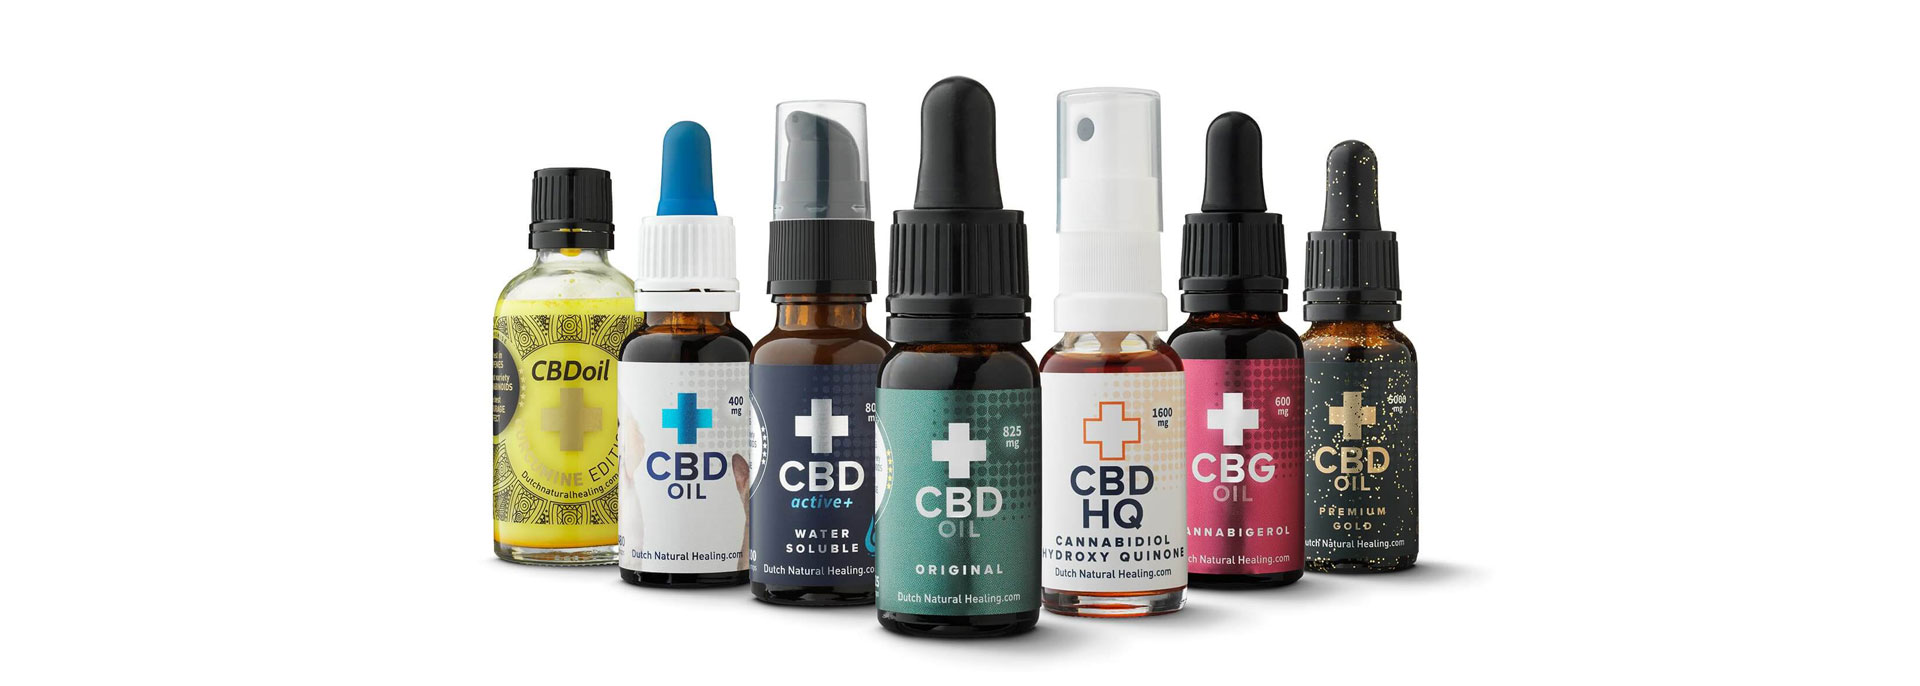 Έλαια CBD της Dutch Natural Healing